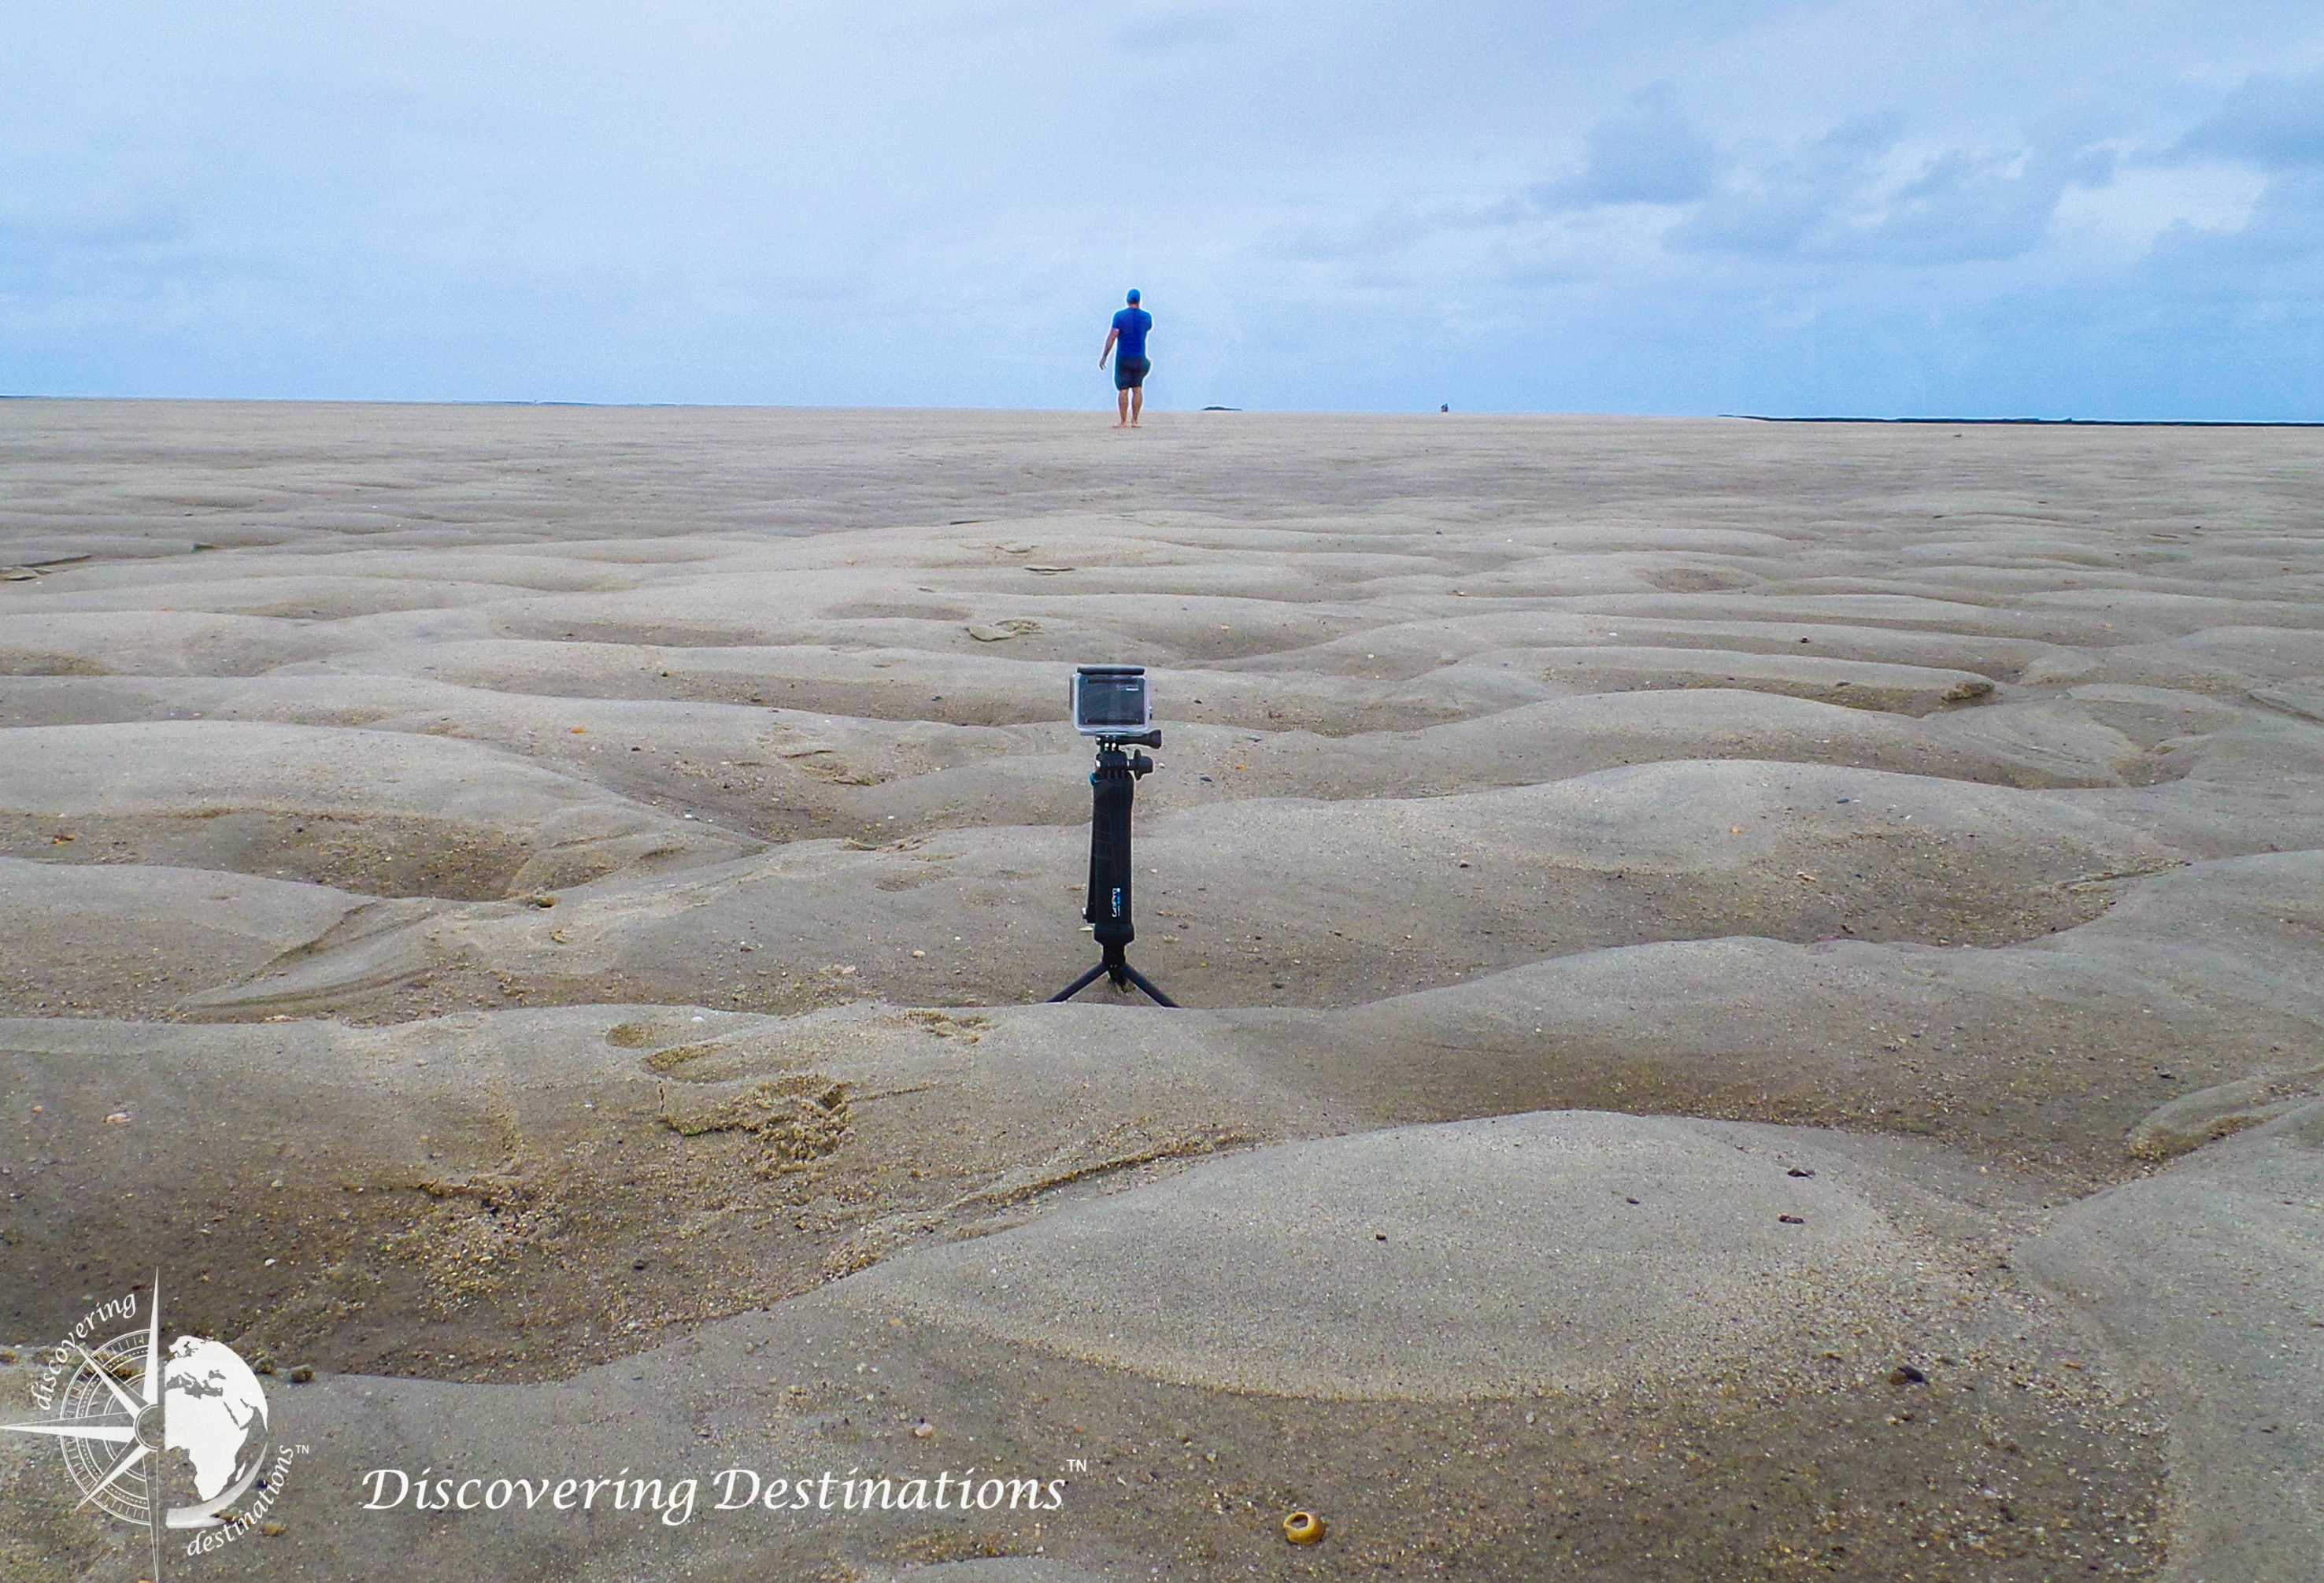 Discovering Praia de Carneiros - Wandering the fictitious beach